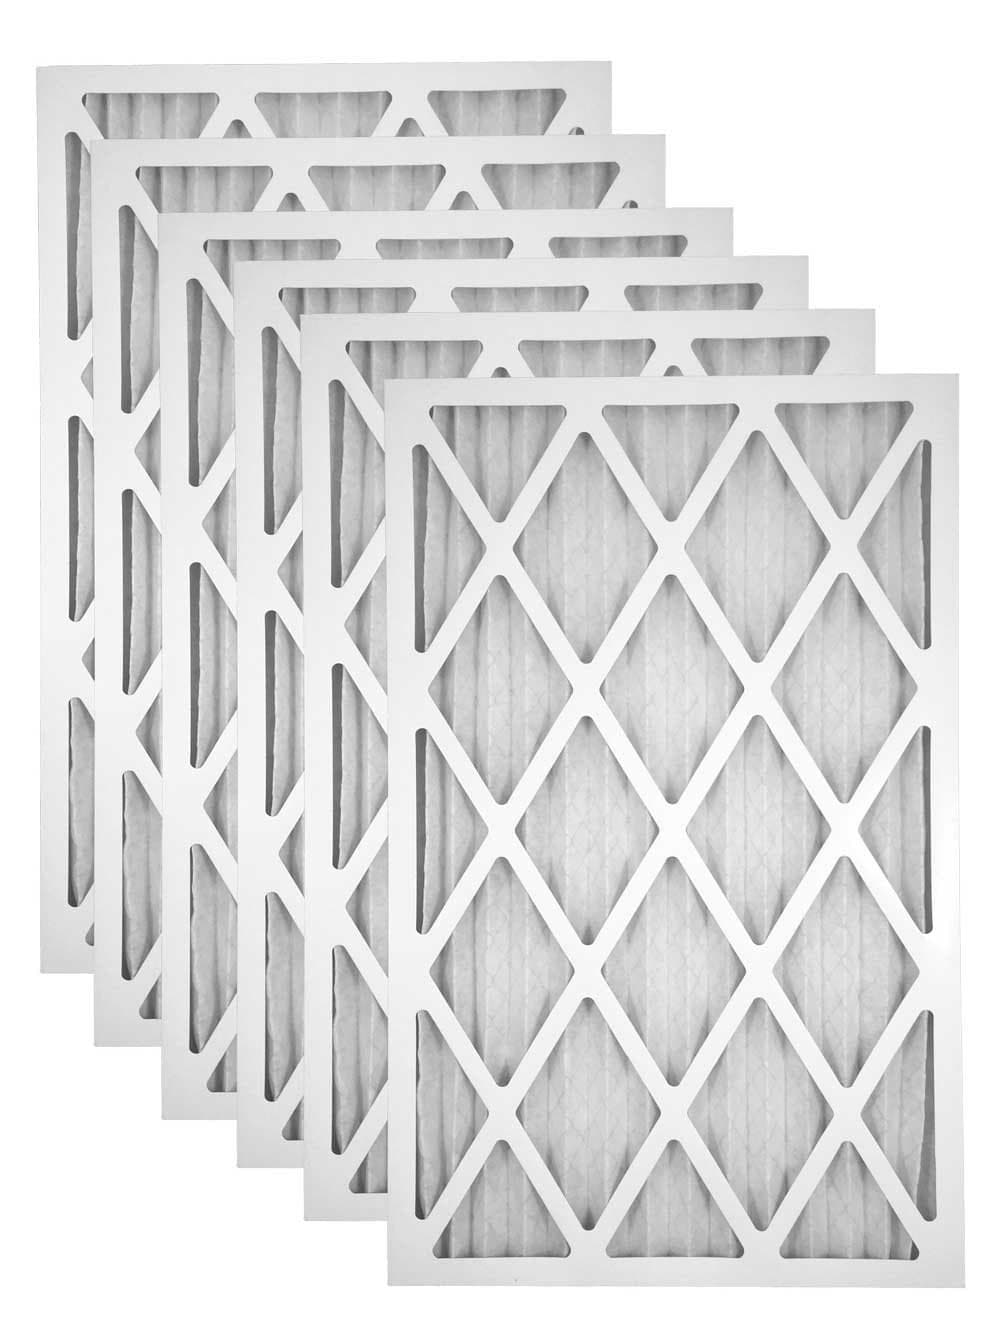 Atomic 14x20x2 MERV 13 Pleated AC Furnace Filter - Case of 6